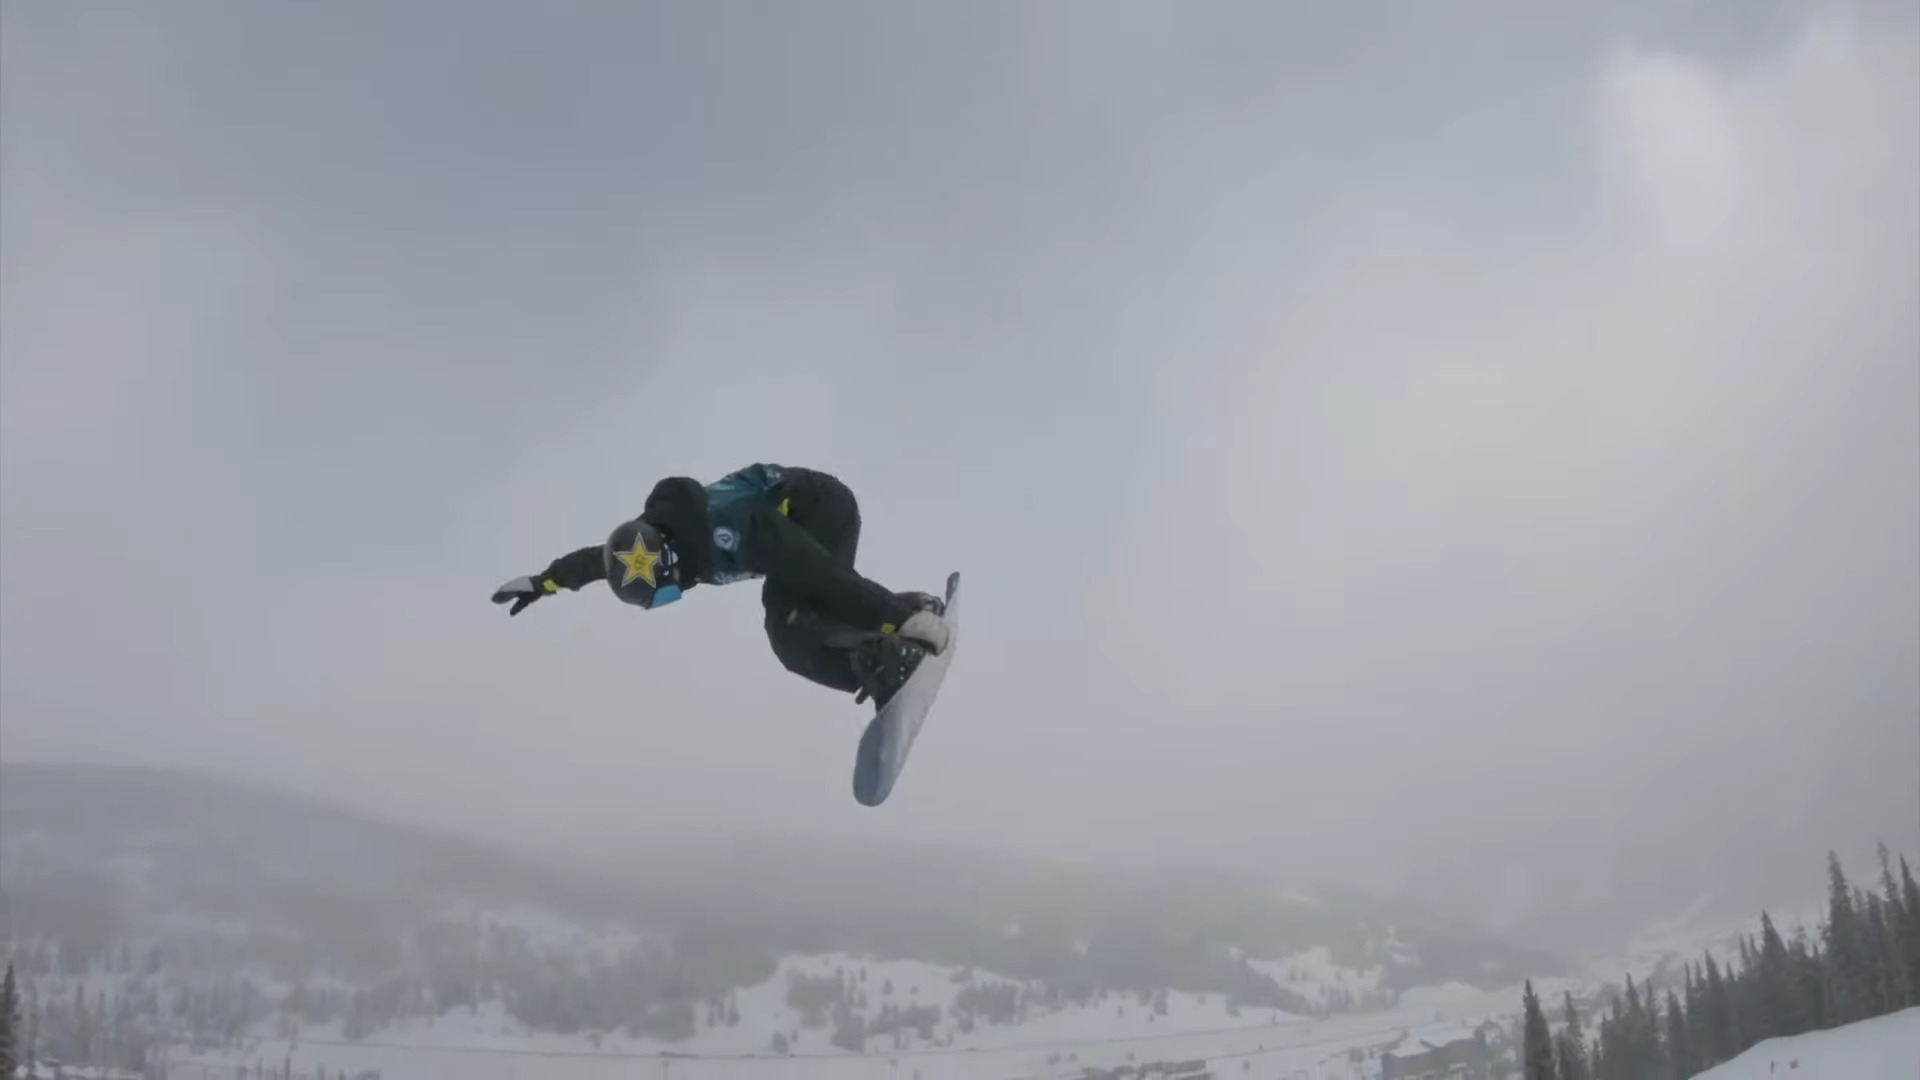 dew tour aimless ep3